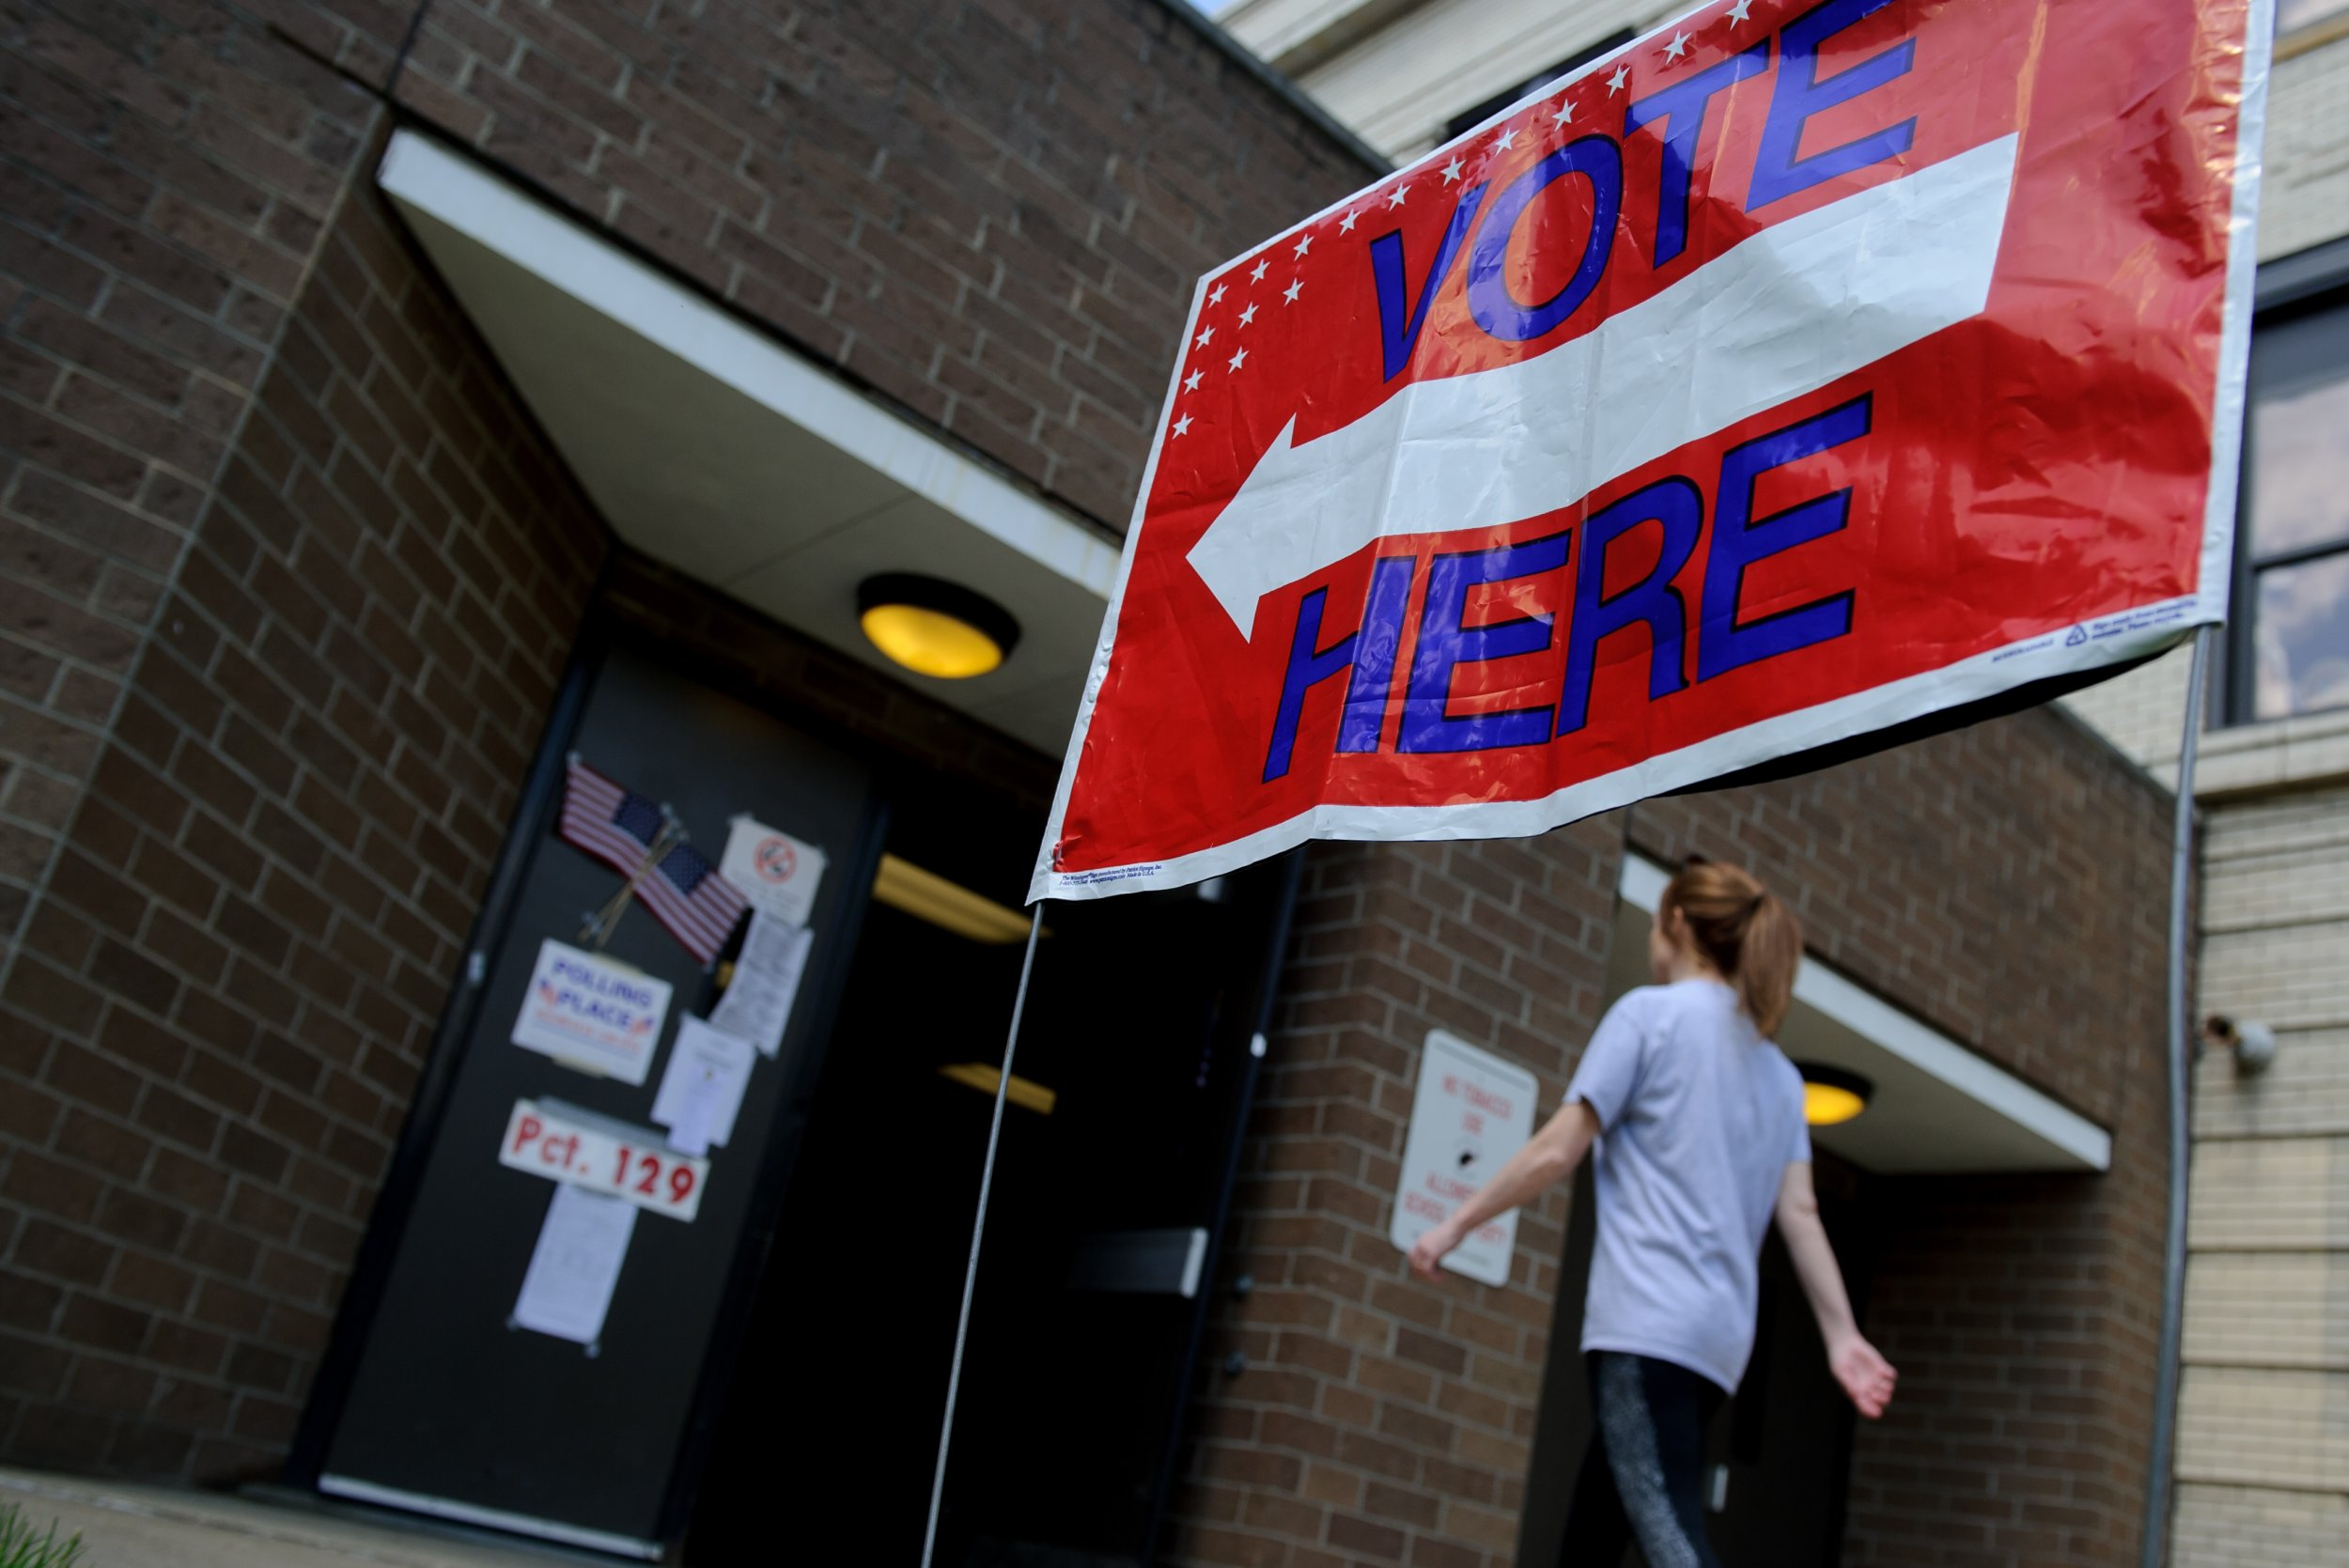 Midterms >> Primary Election Day 2018: Results, Live Blog From Key Races in West Virginia, Ohio, Indiana and ...